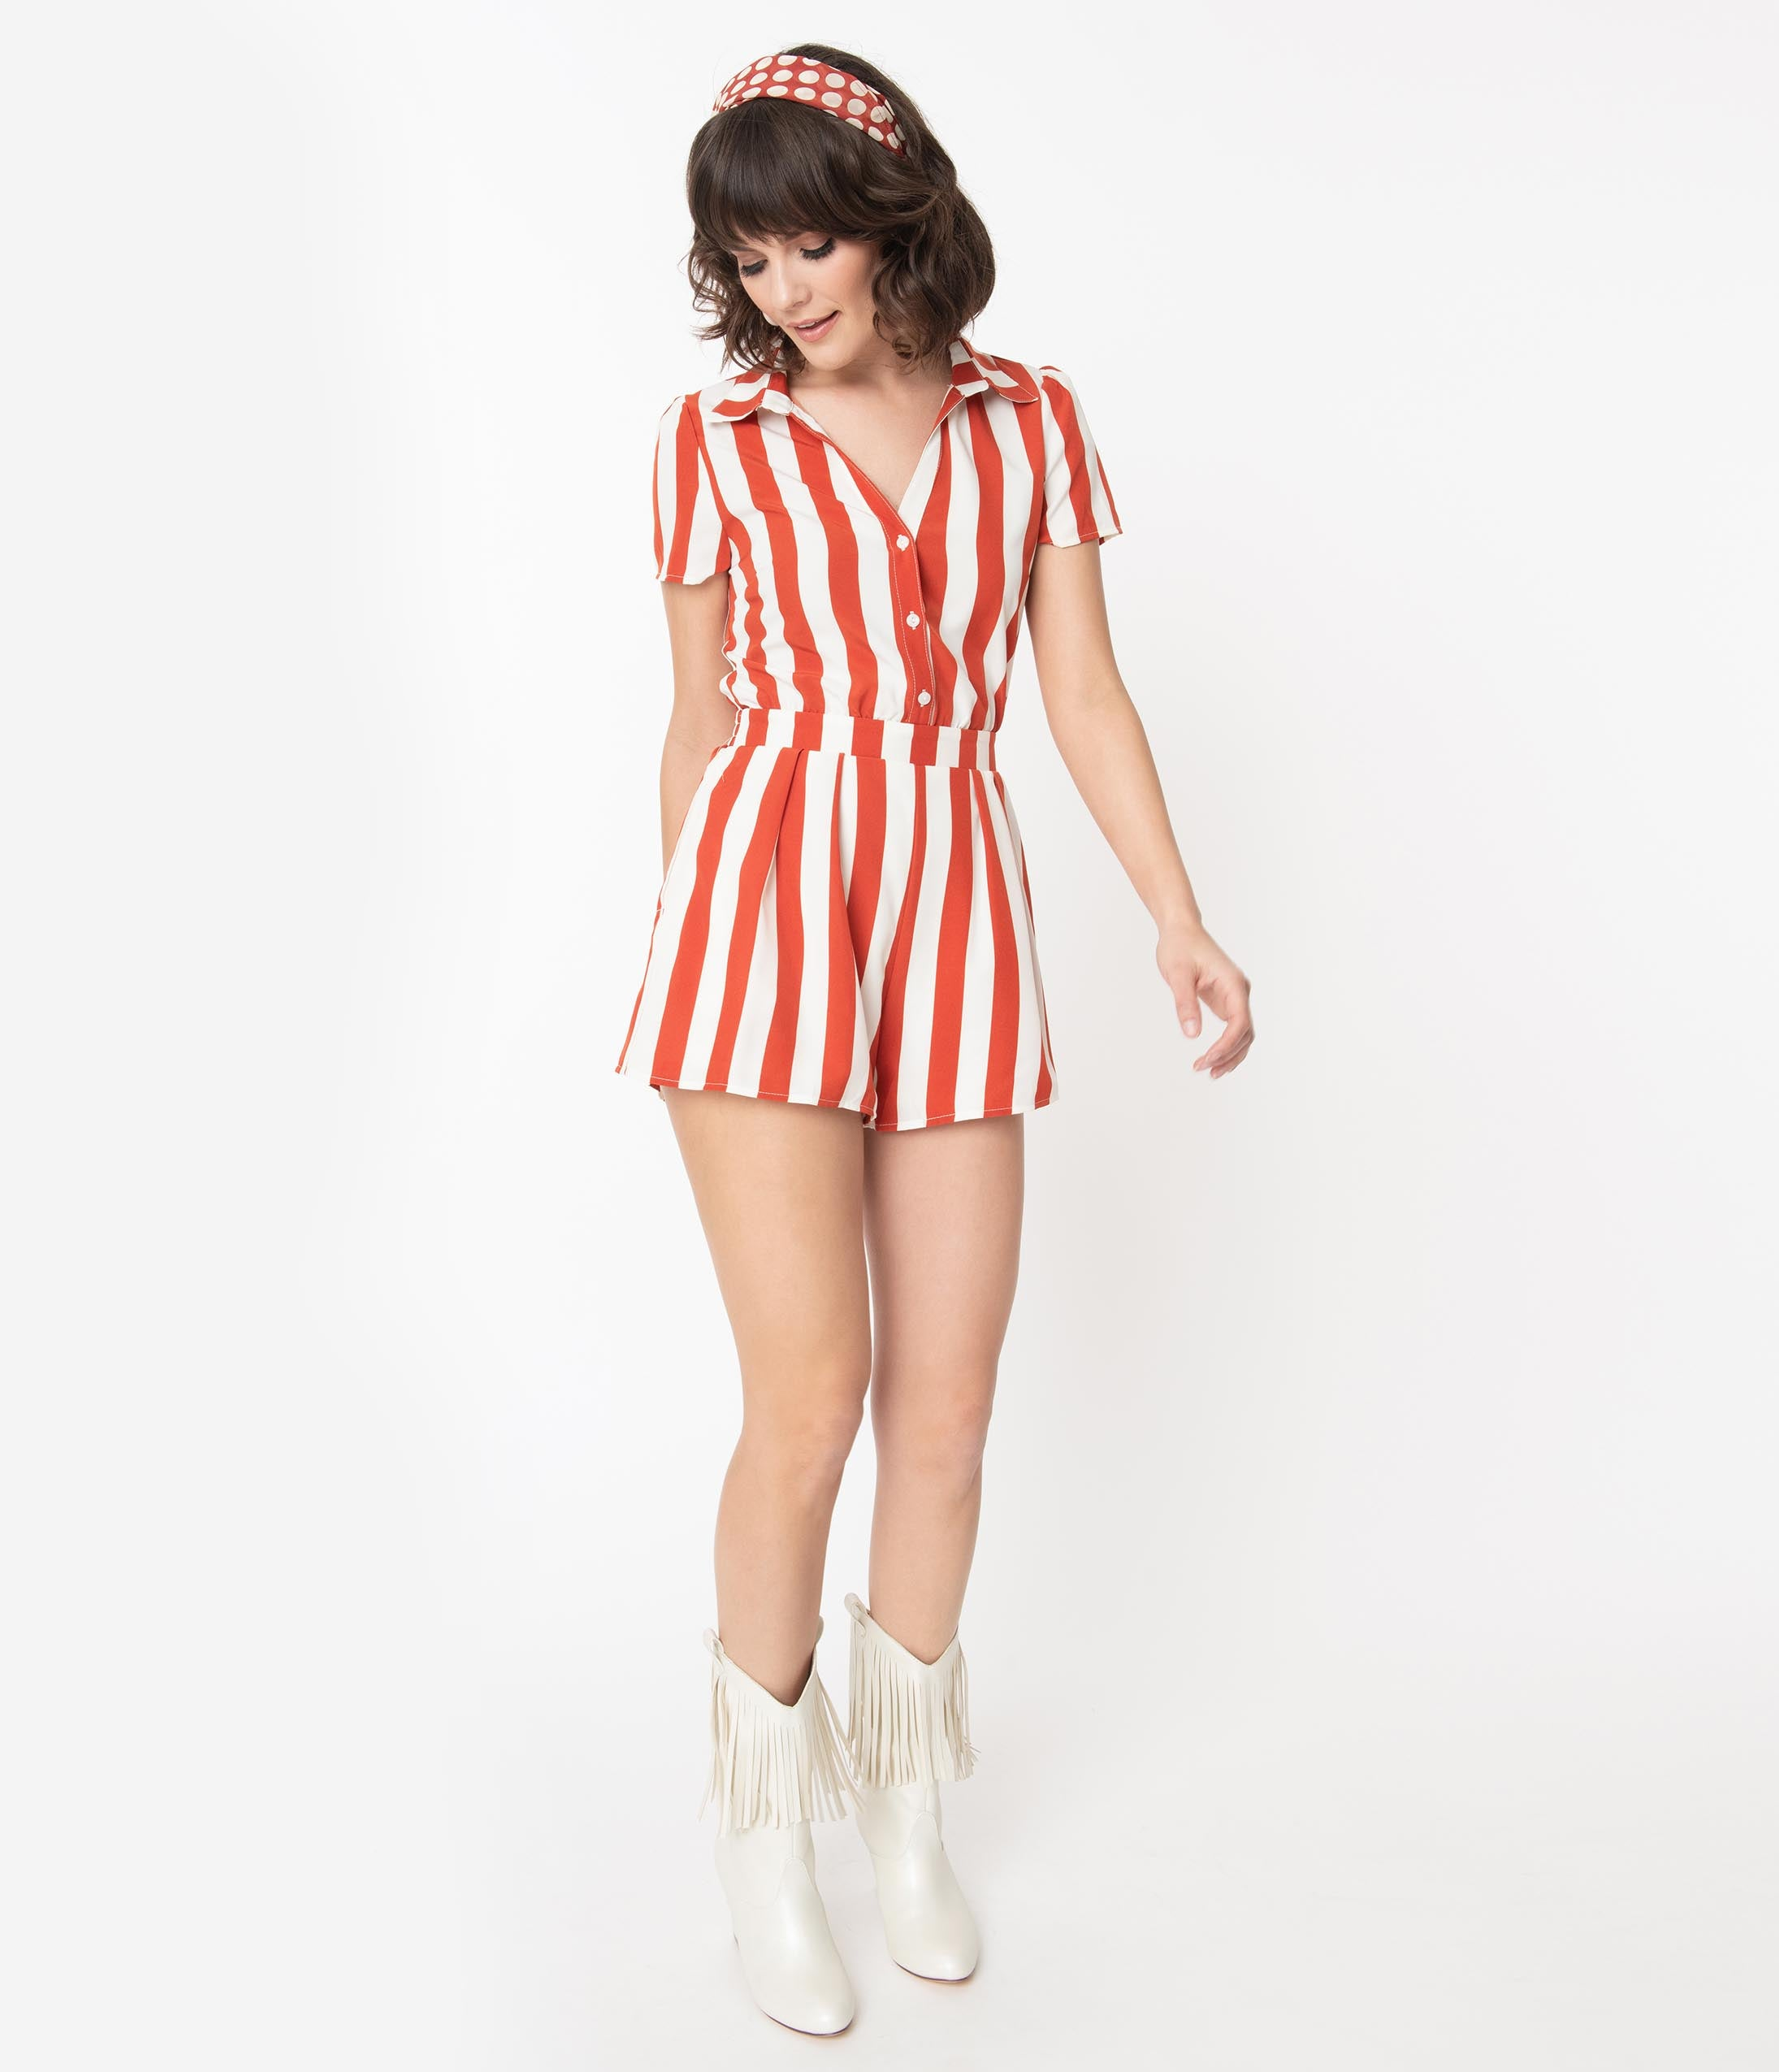 70s Jumpsuit | Disco Jumpsuits, Sequin Rompers Retro Style Rust  Ivory Stripe Romper $48.00 AT vintagedancer.com